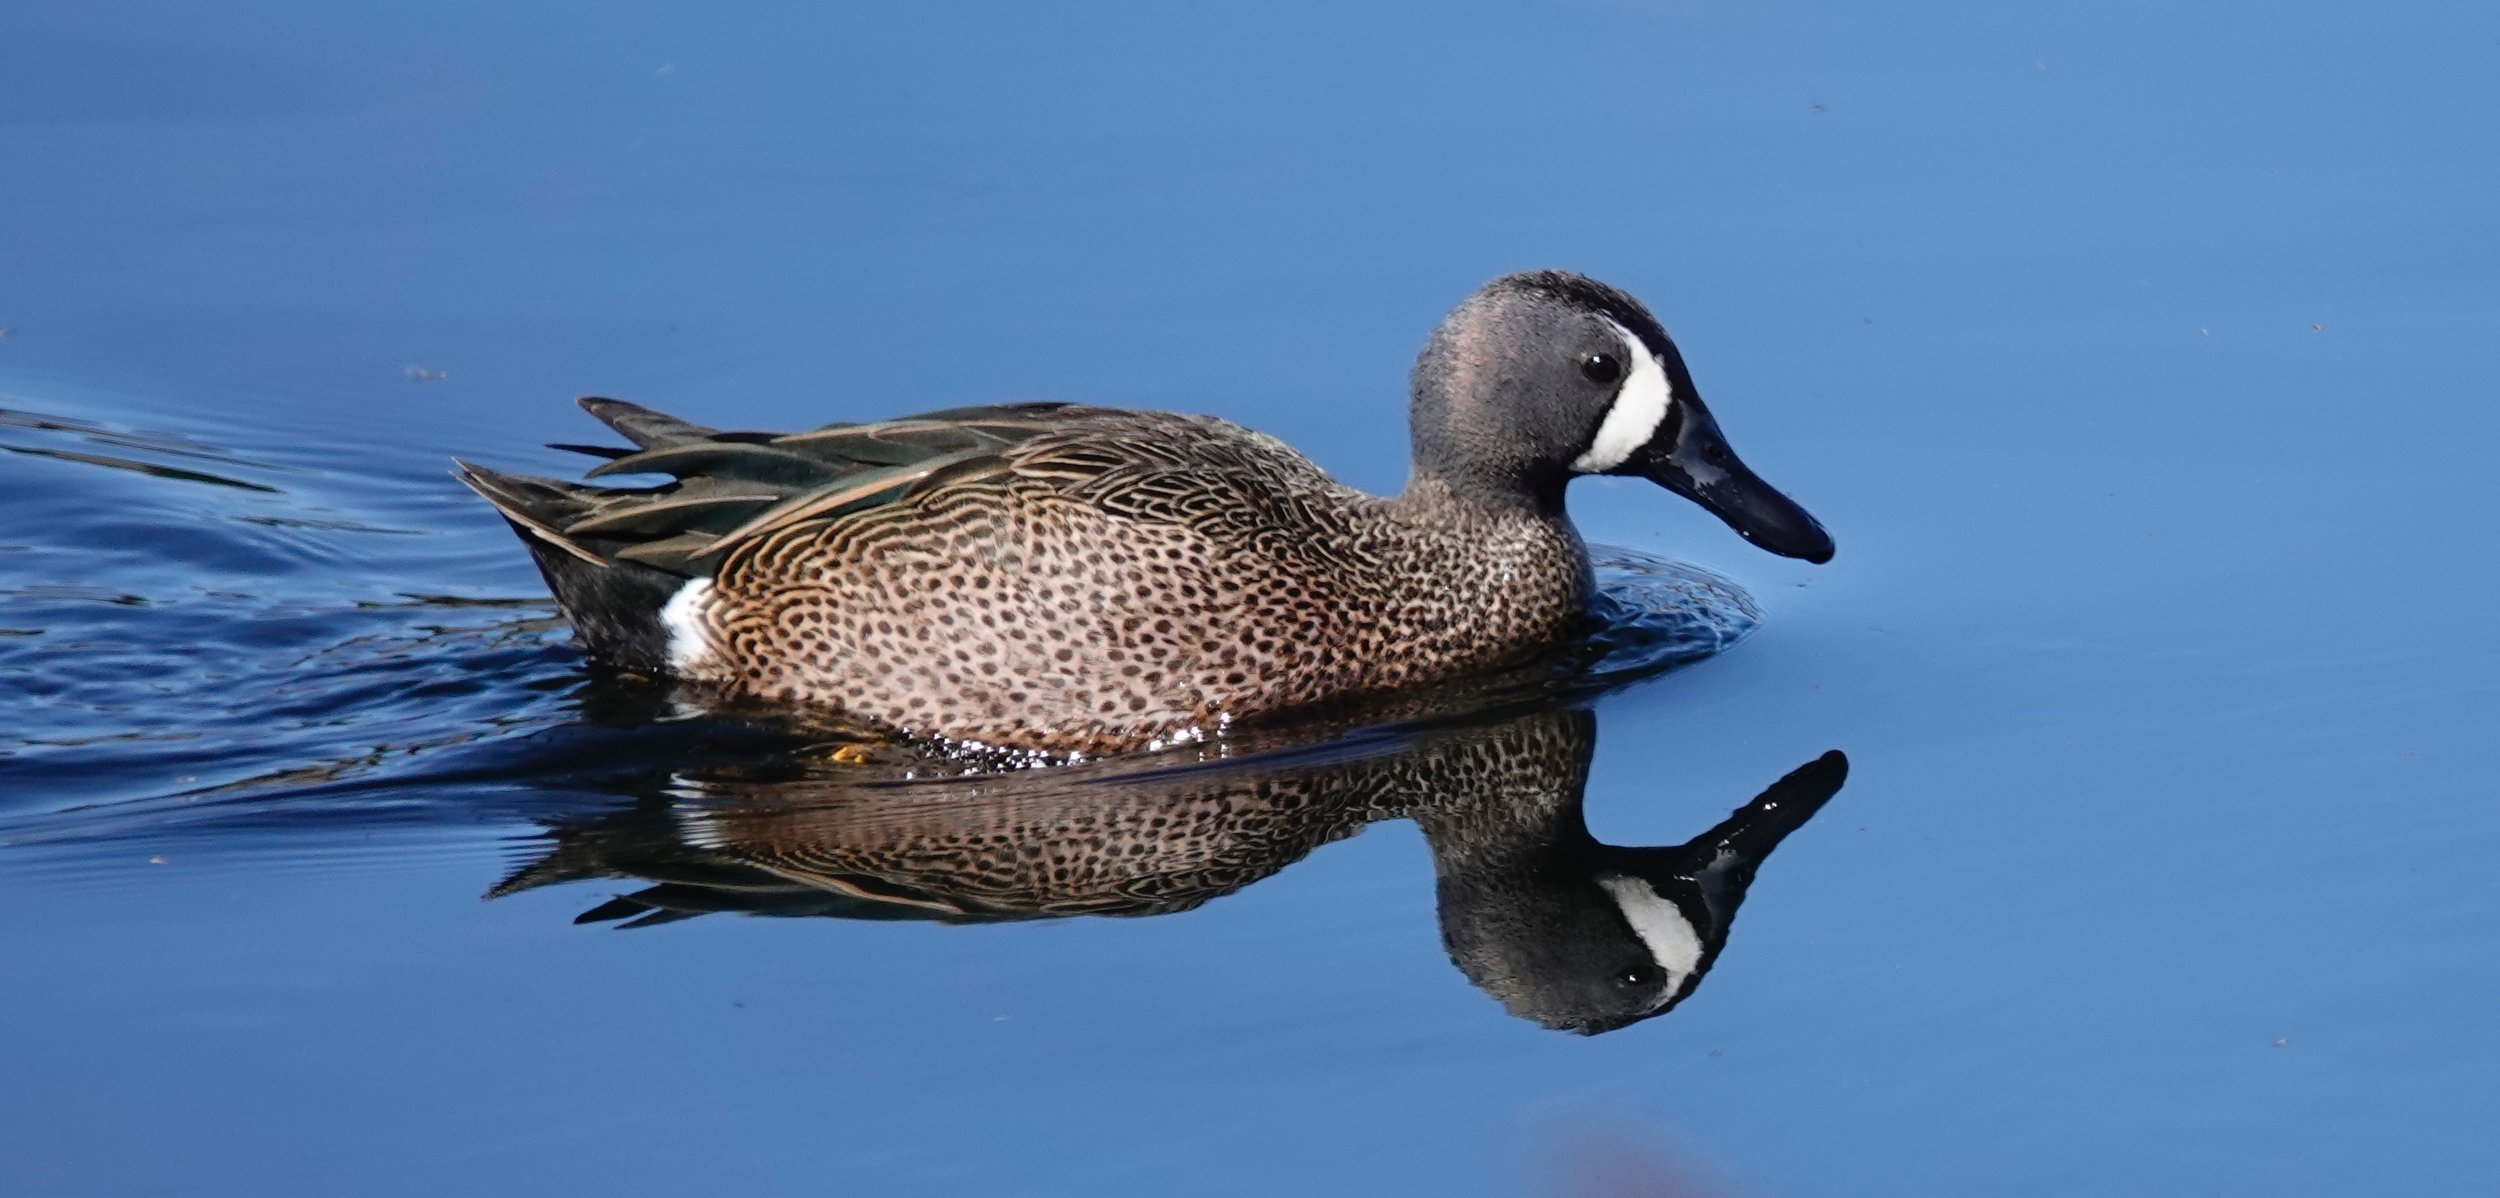 The blue-winged teal is the second most abundant duck in North America, trailing only the mallard.